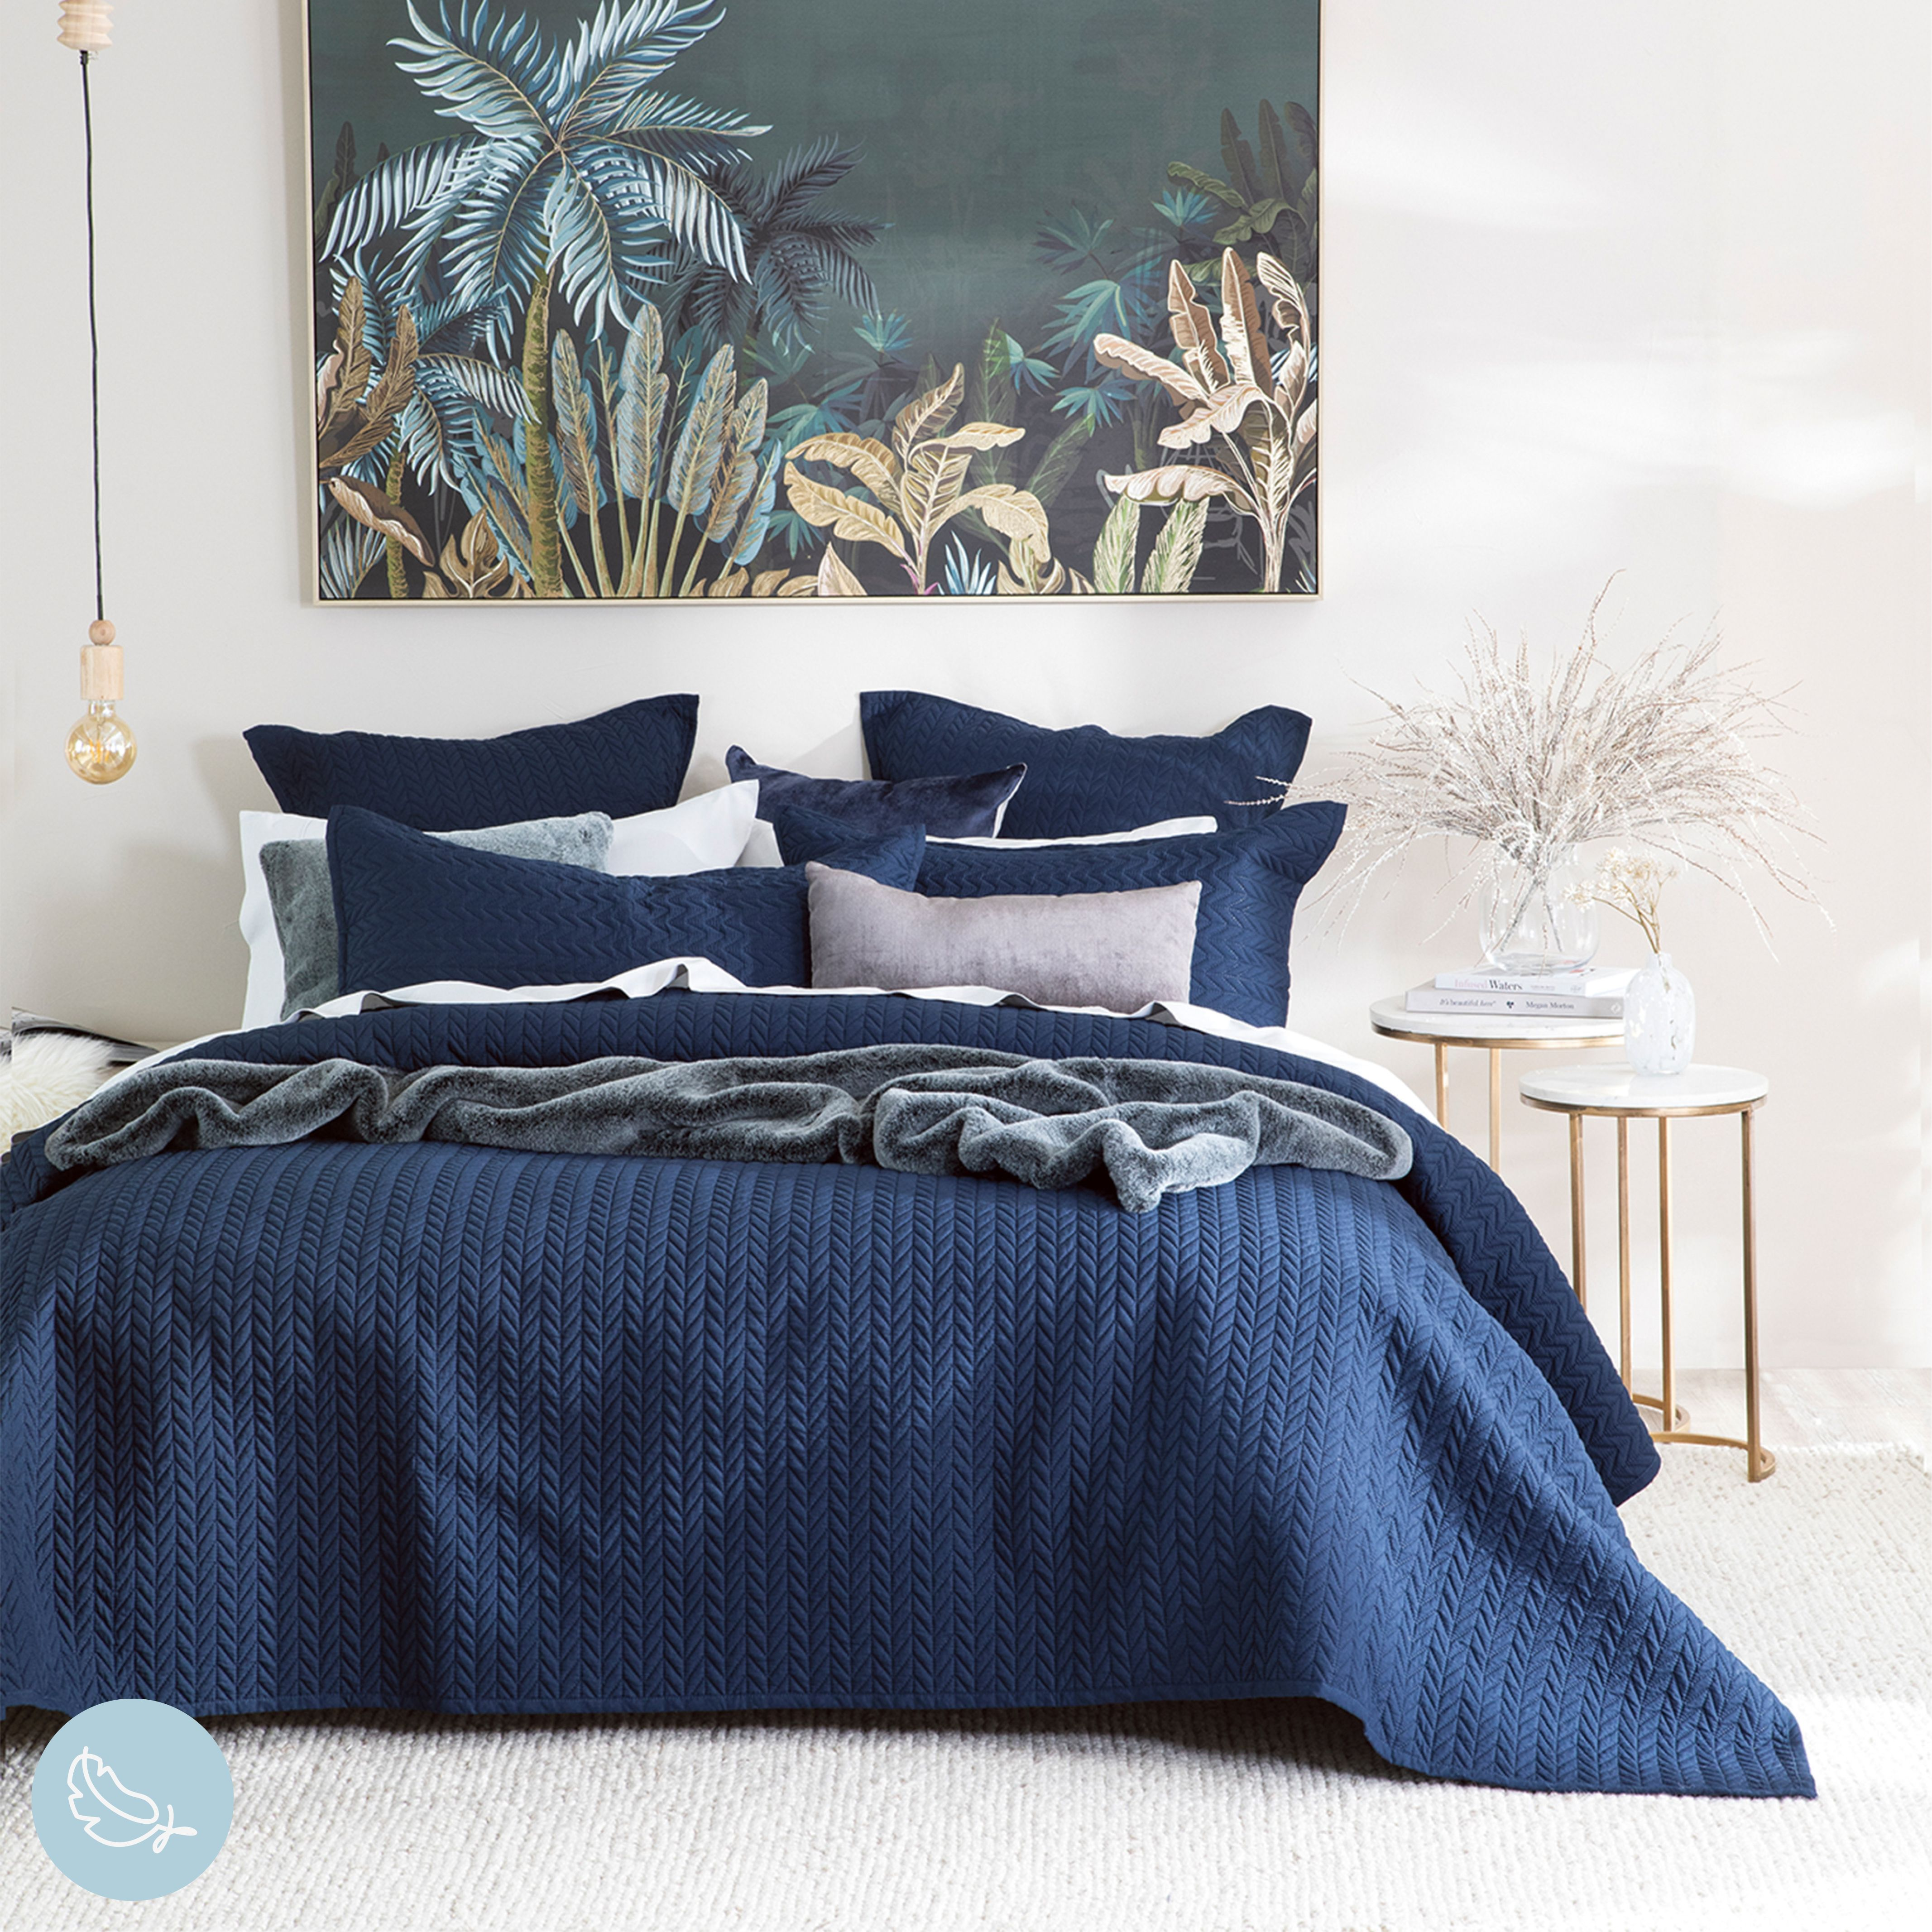 The gorgeous Camden coverlet in navy ink is perfectly styled here with faux fur and luxe textures to create a warm winter space. #PillowTalkAustralia #ForTheLoveOfComfort #bedroomdecor #bedroomstyling #coverlet #bedroom #diyhomedecor #bed #bedroomstyle